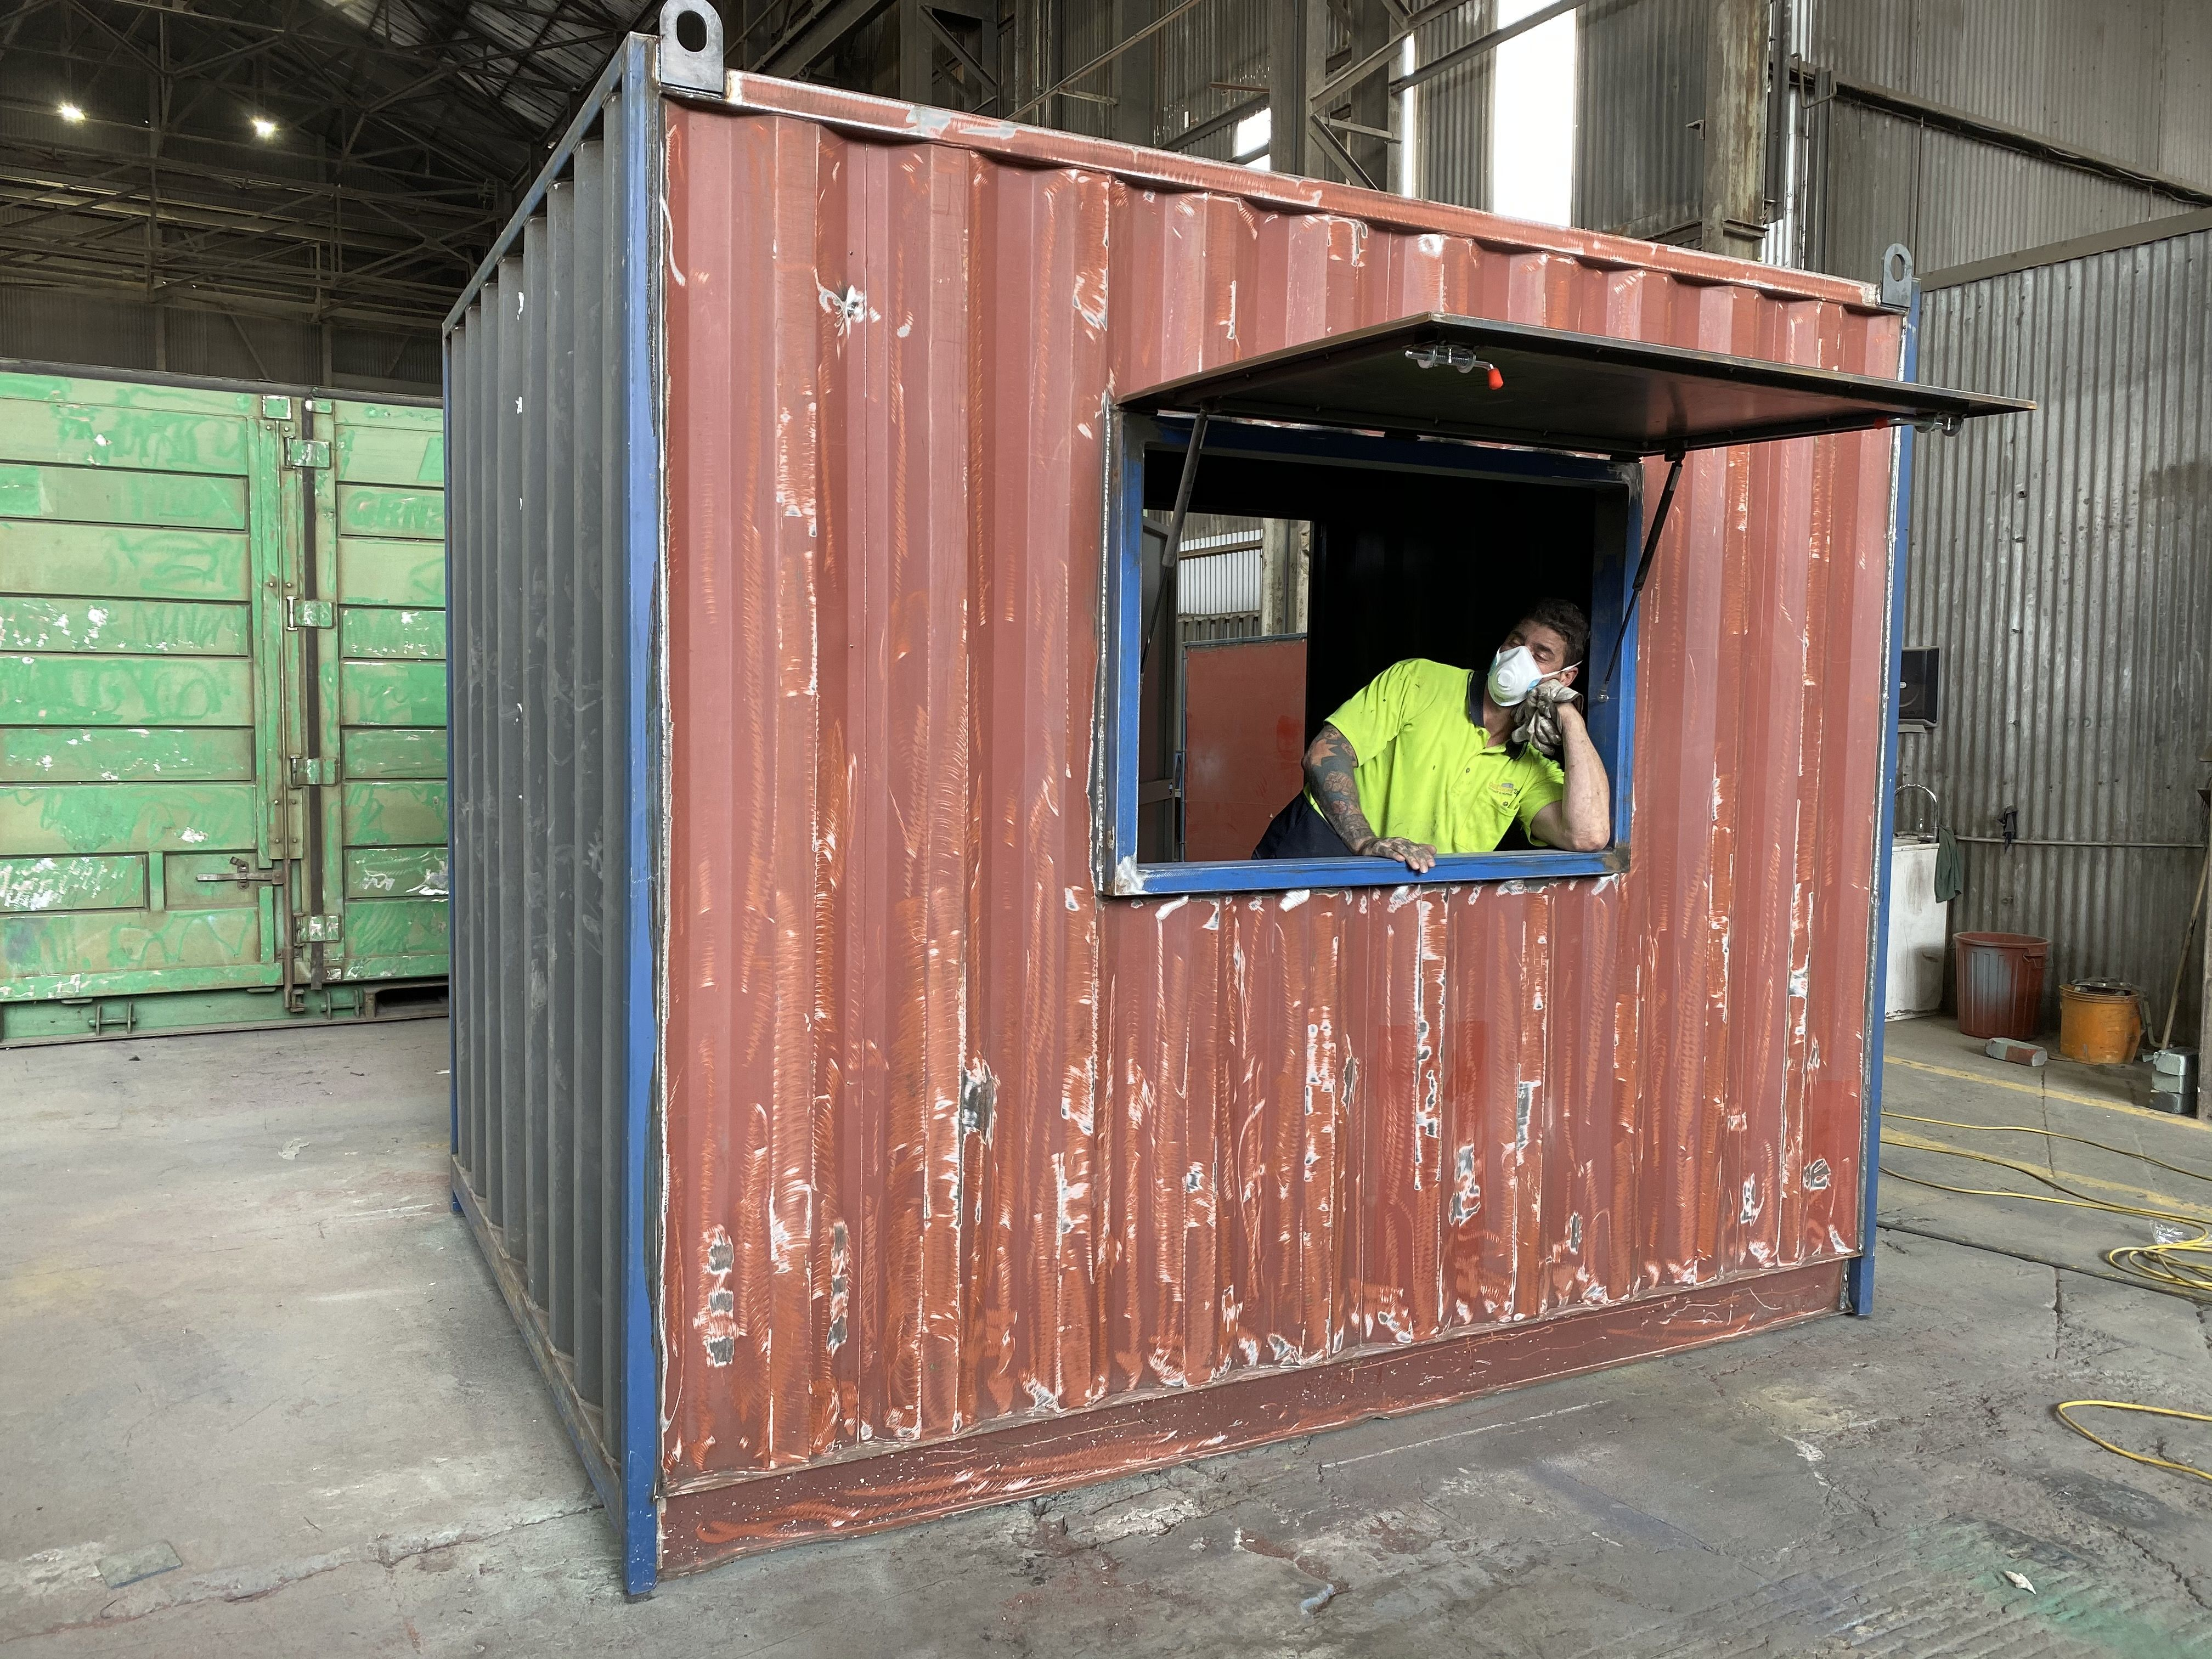 Shipping Containers For Sale In Melbourne Shipping Containers For Sale Containers For Sale Restaurant Interior Design